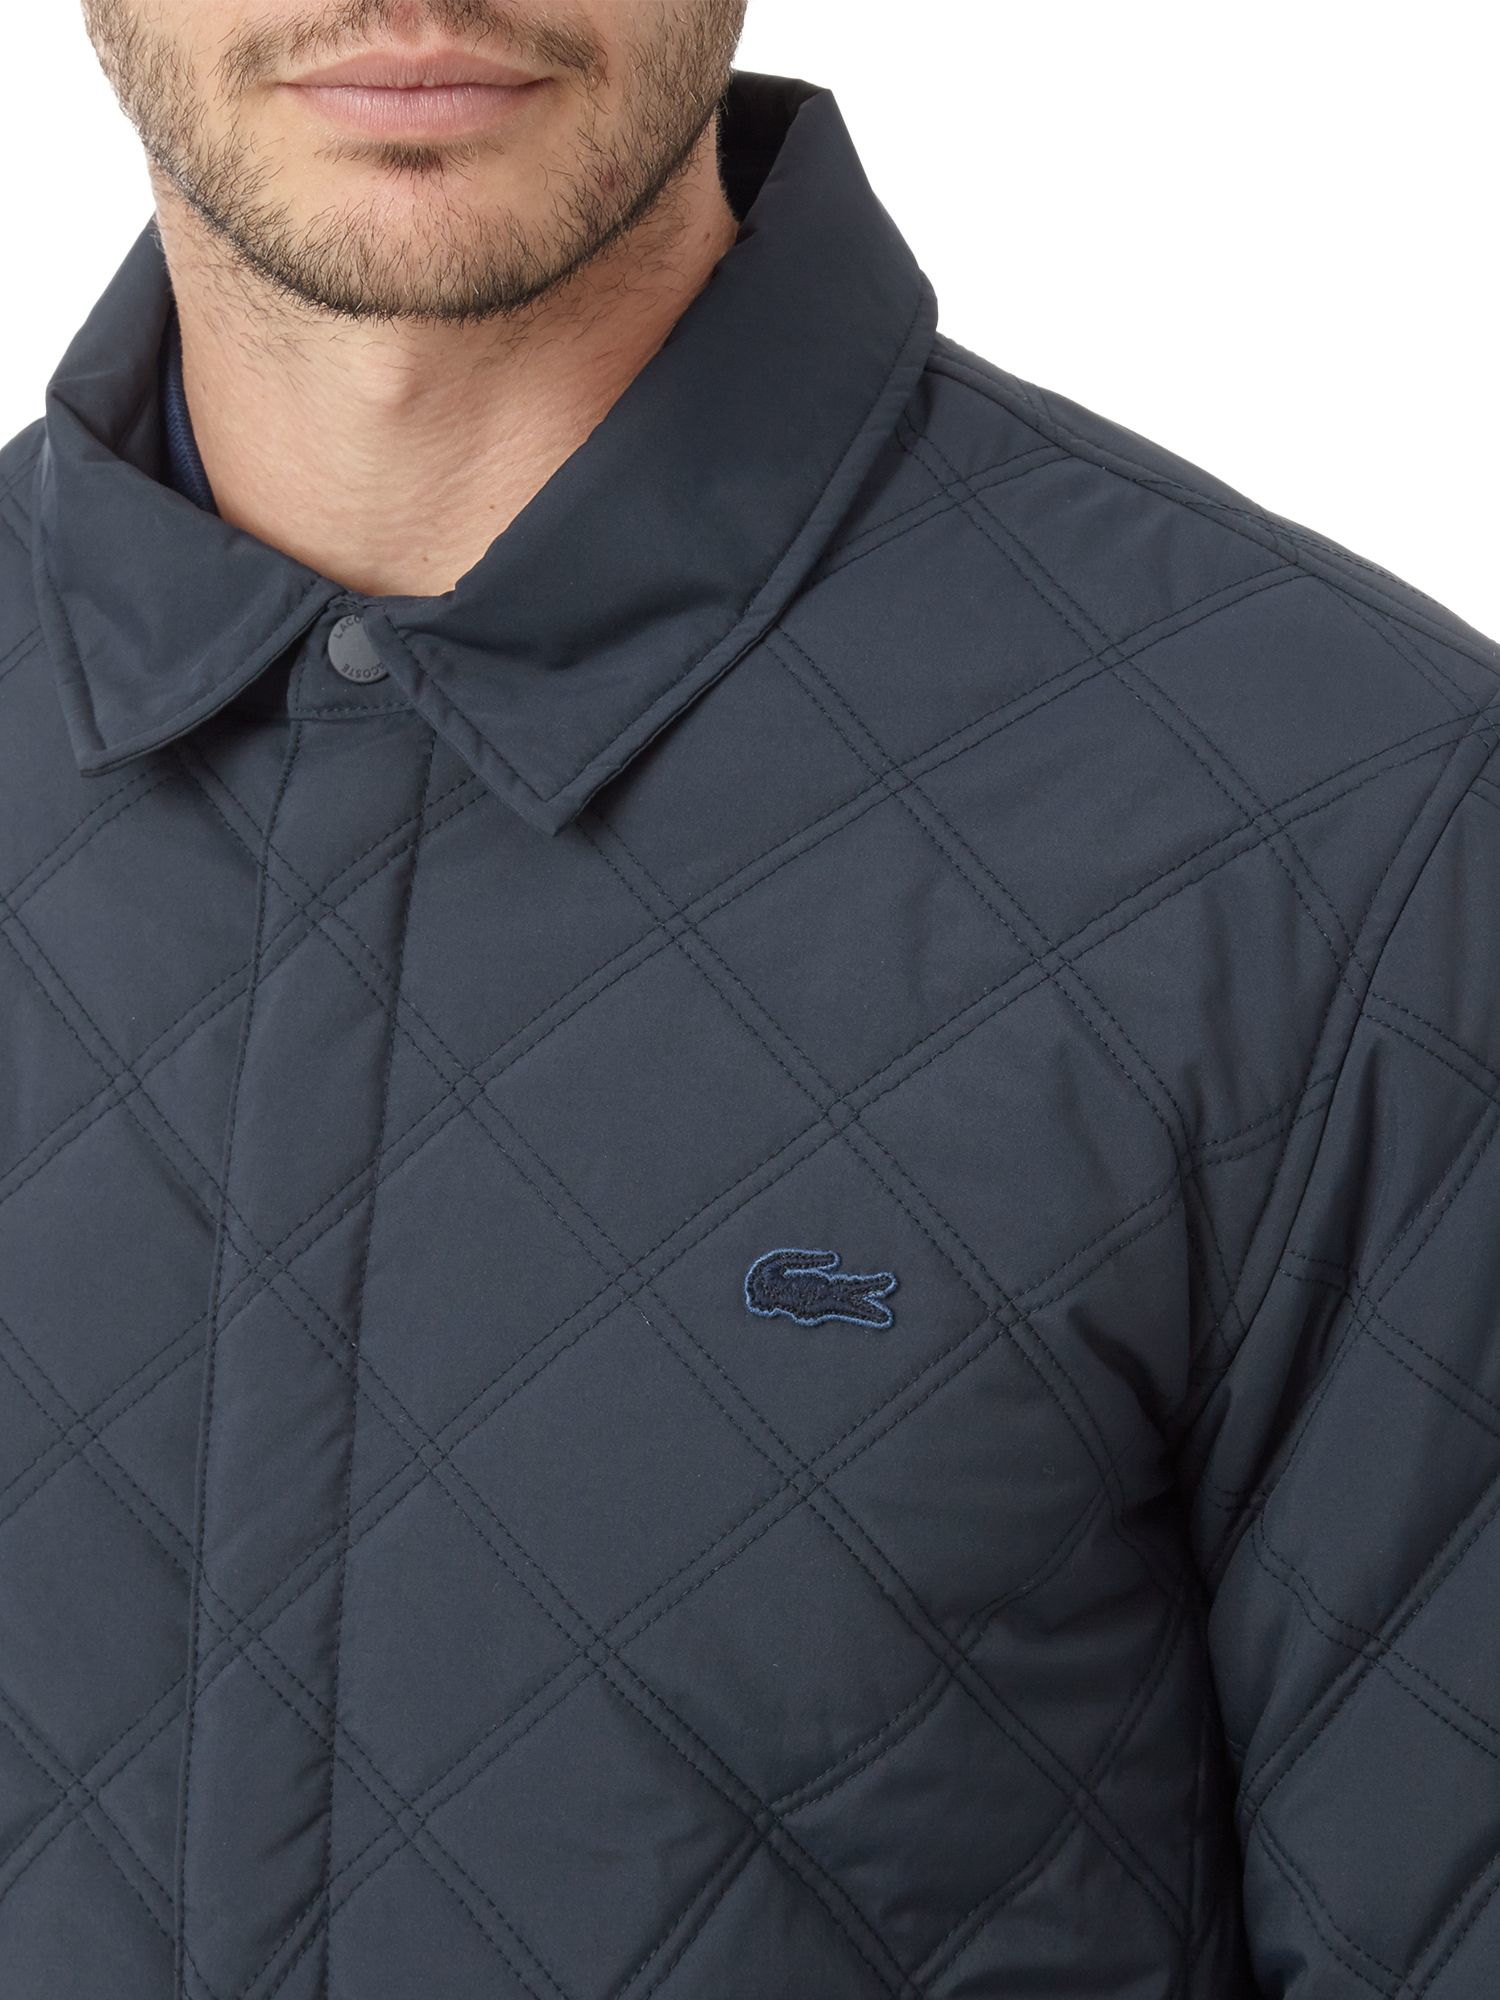 lyst lacoste diamond quilted jacket in blue for men. Black Bedroom Furniture Sets. Home Design Ideas